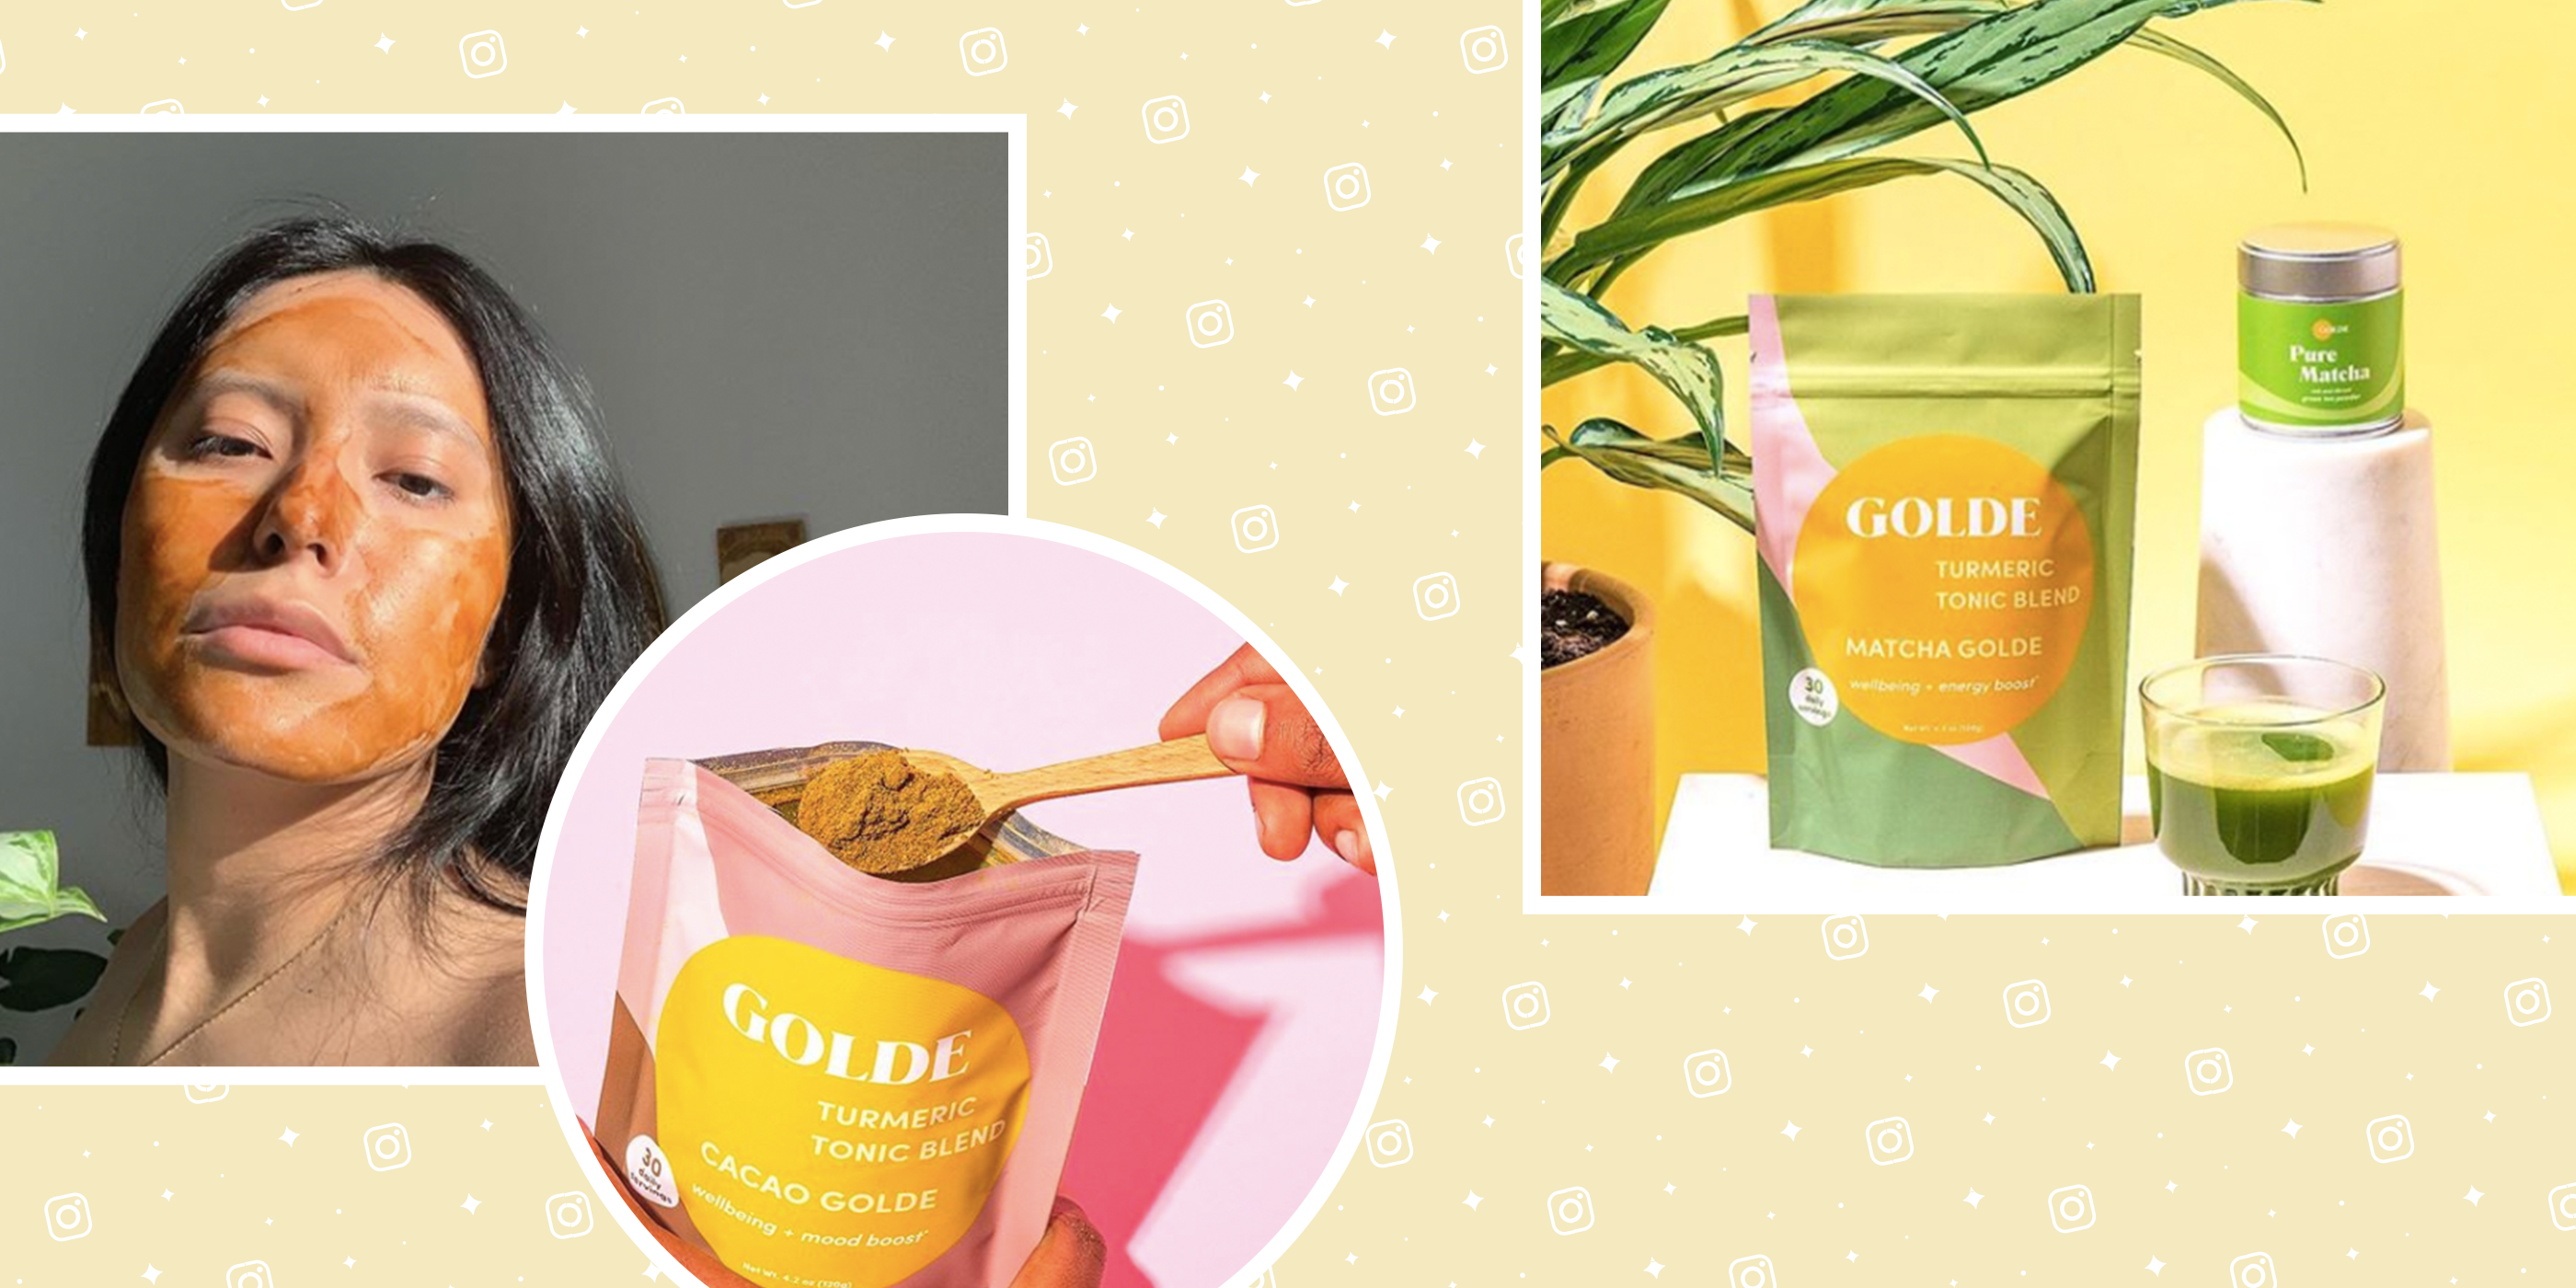 Golde is Making Wellness Inclusive One Instagram Post at a Time, by planoly